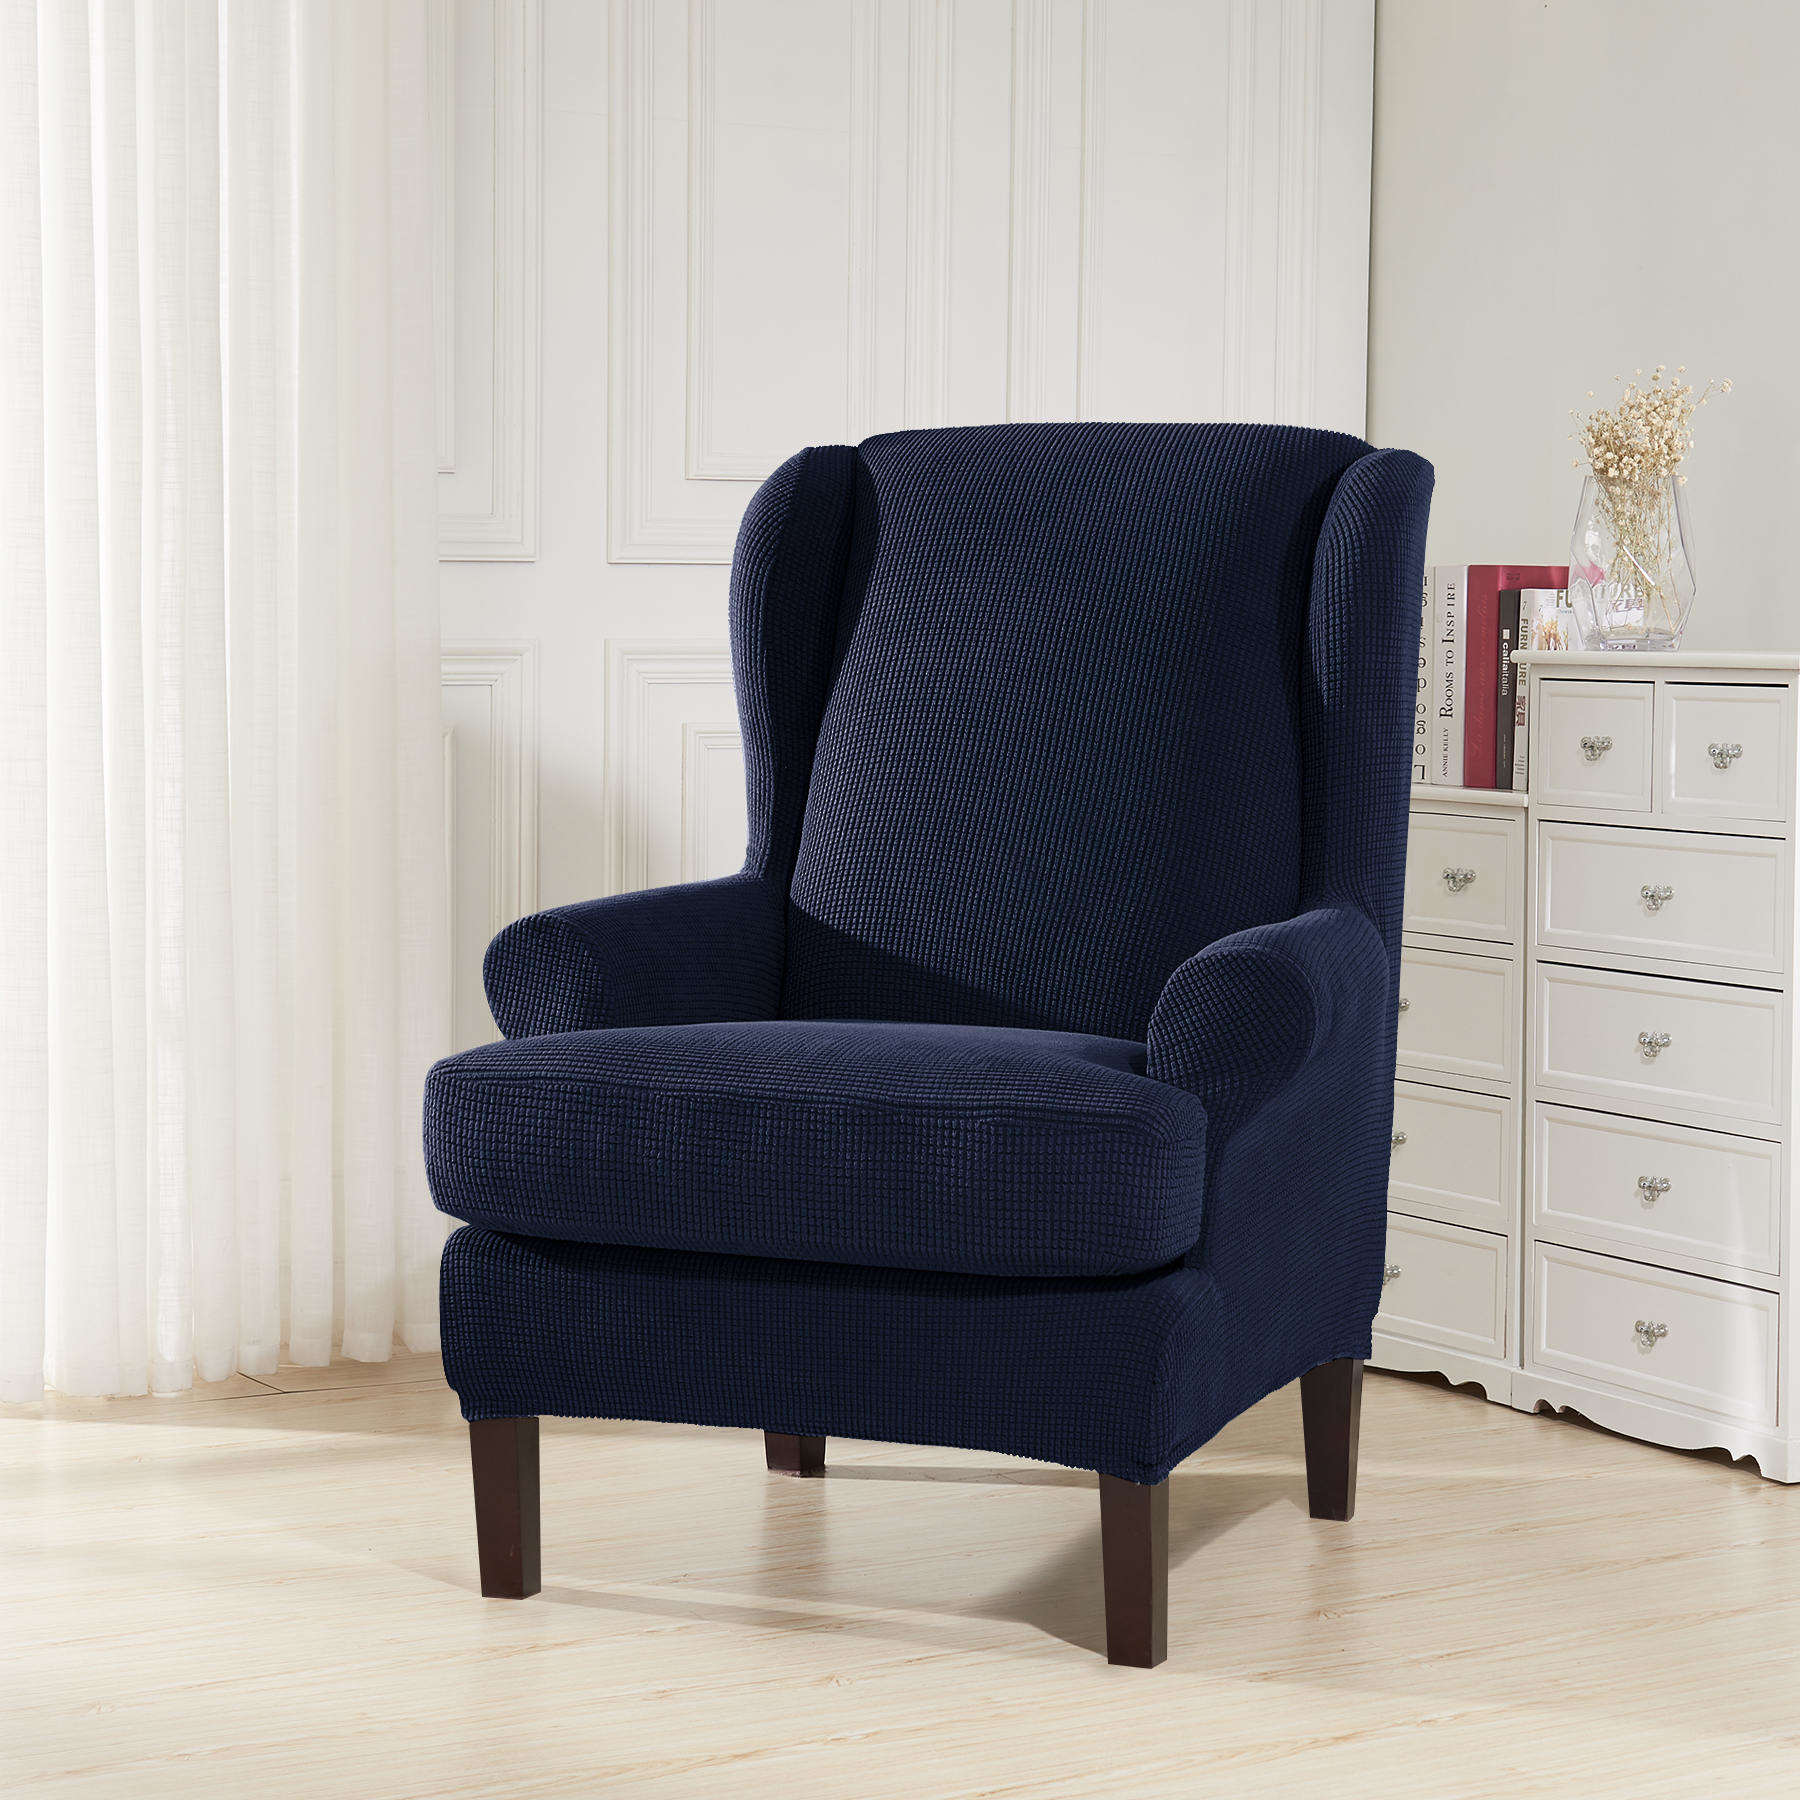 Subrtex 2 Piece Spandex Waffle Fabric Stretch Wingback Chair Slipcovers (Wing Chair, Navy)